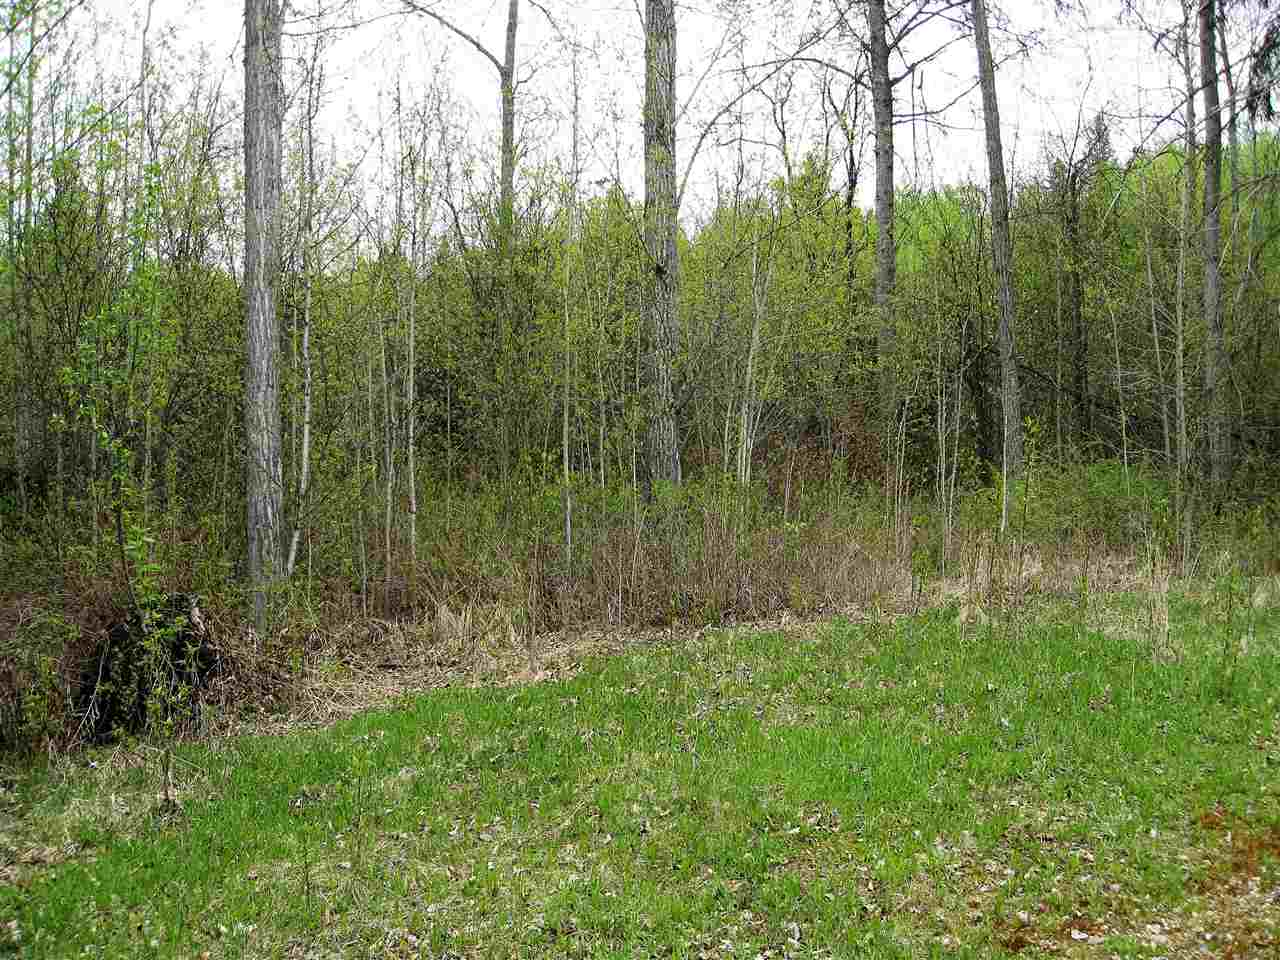 Main Photo: 19 Poppy Place: Rural Lac Ste. Anne County Rural Land/Vacant Lot for sale : MLS® # E4064605